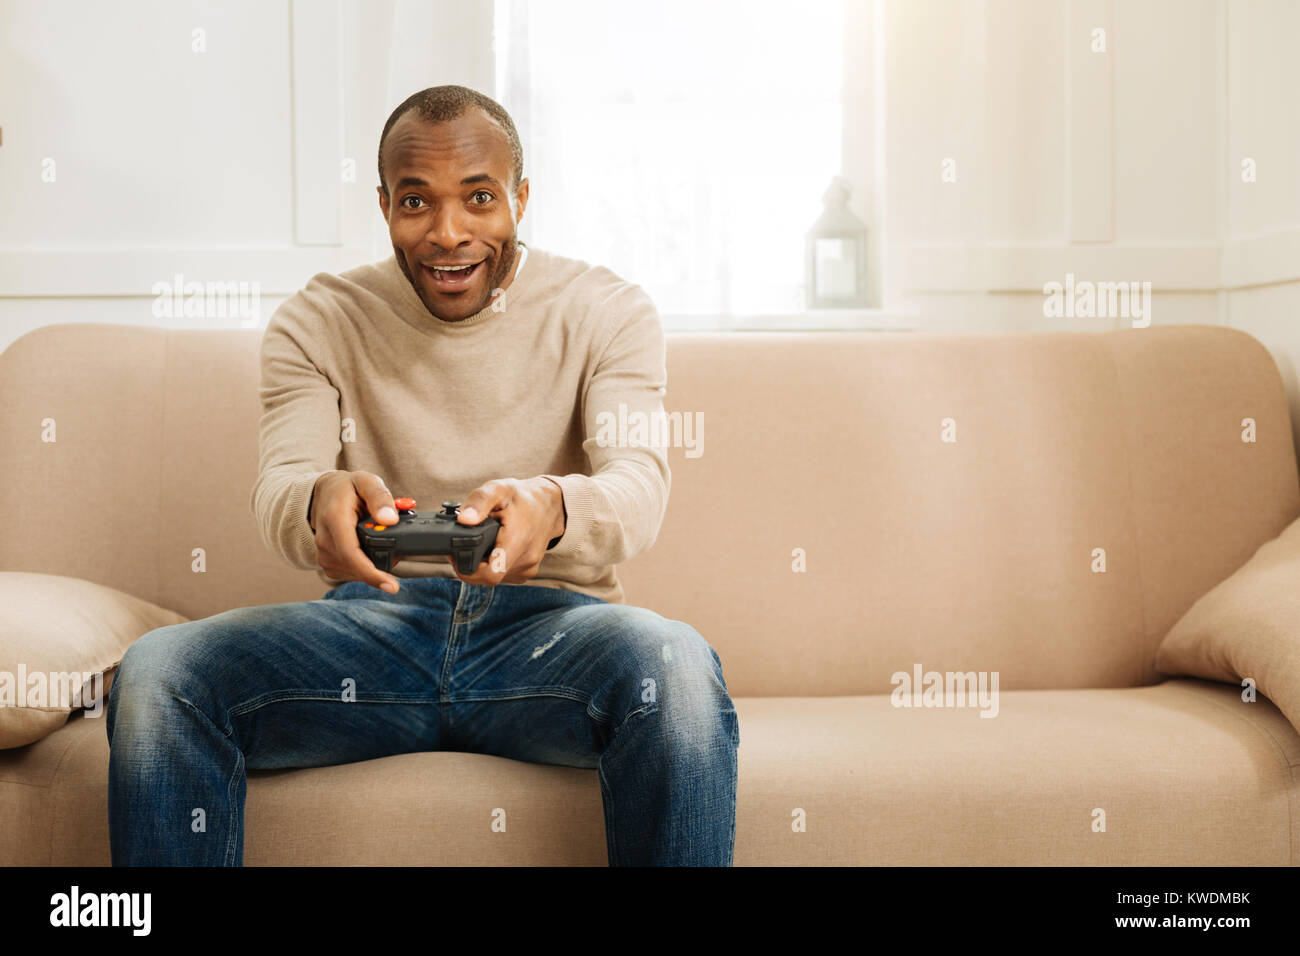 Cheerful man playing a game - Stock Image